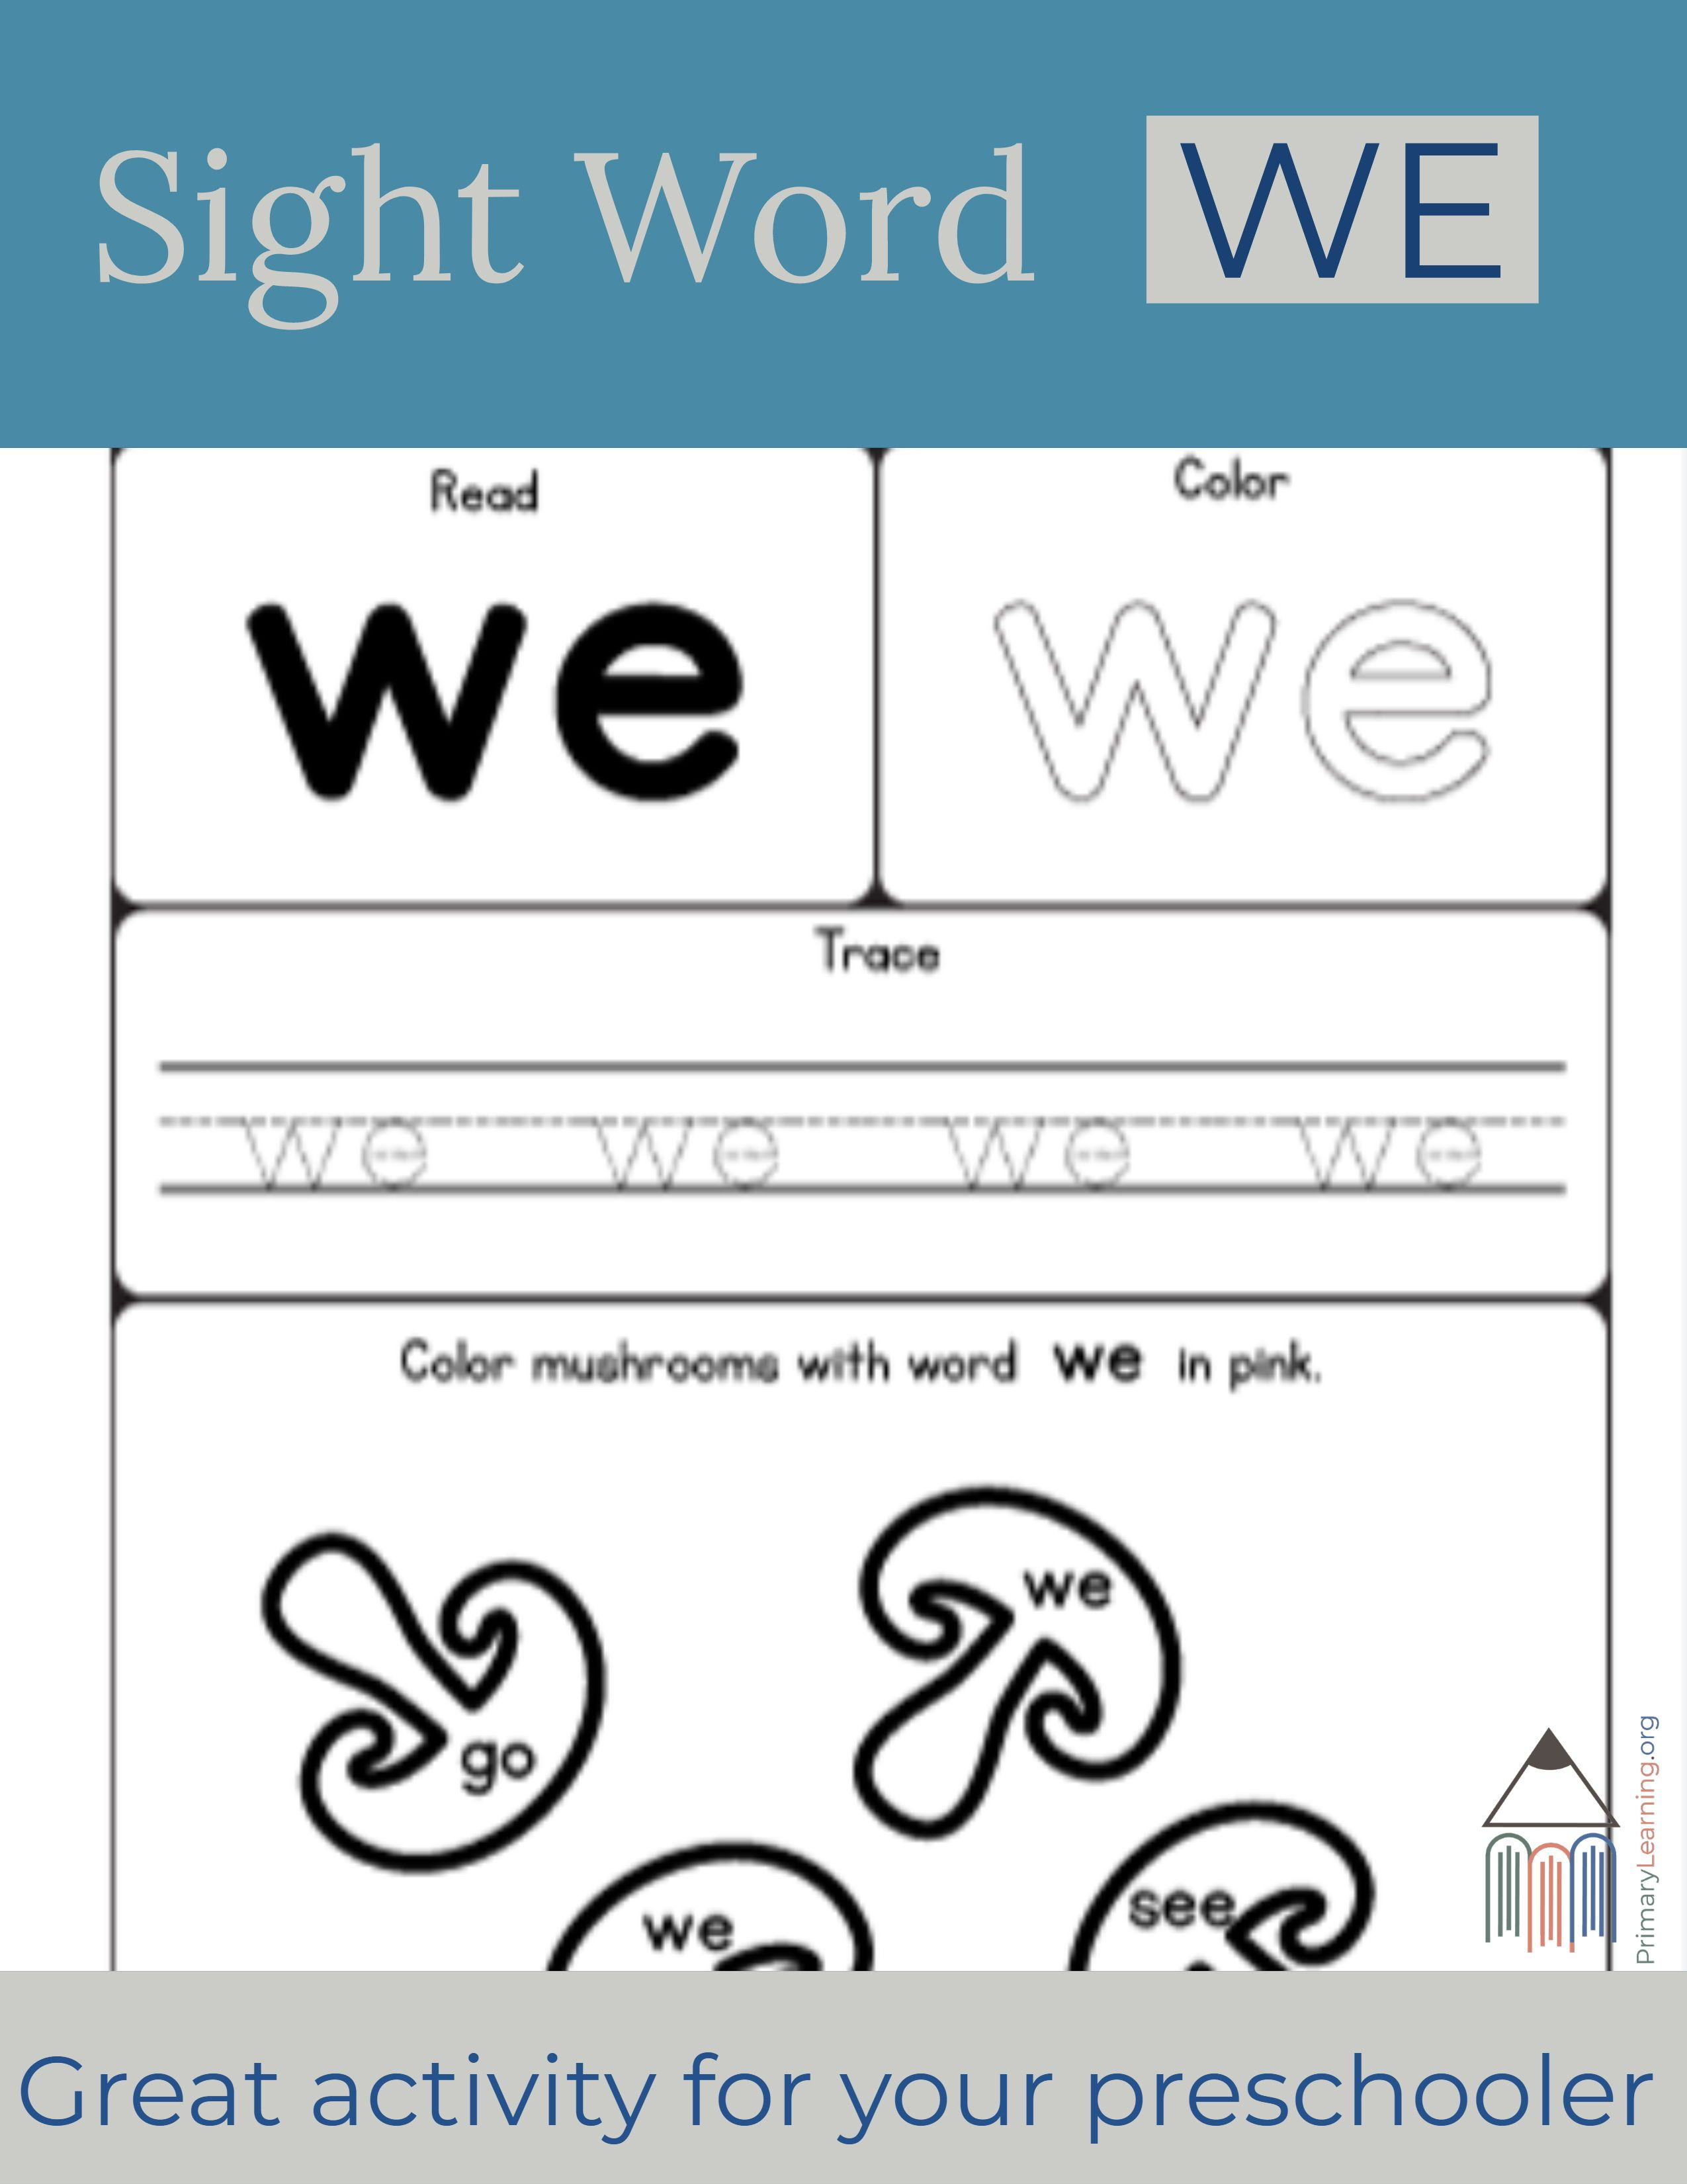 Sight Word We Worksheet Primarylearning Org Sight Word Worksheets Sight Words Pre Primer Words